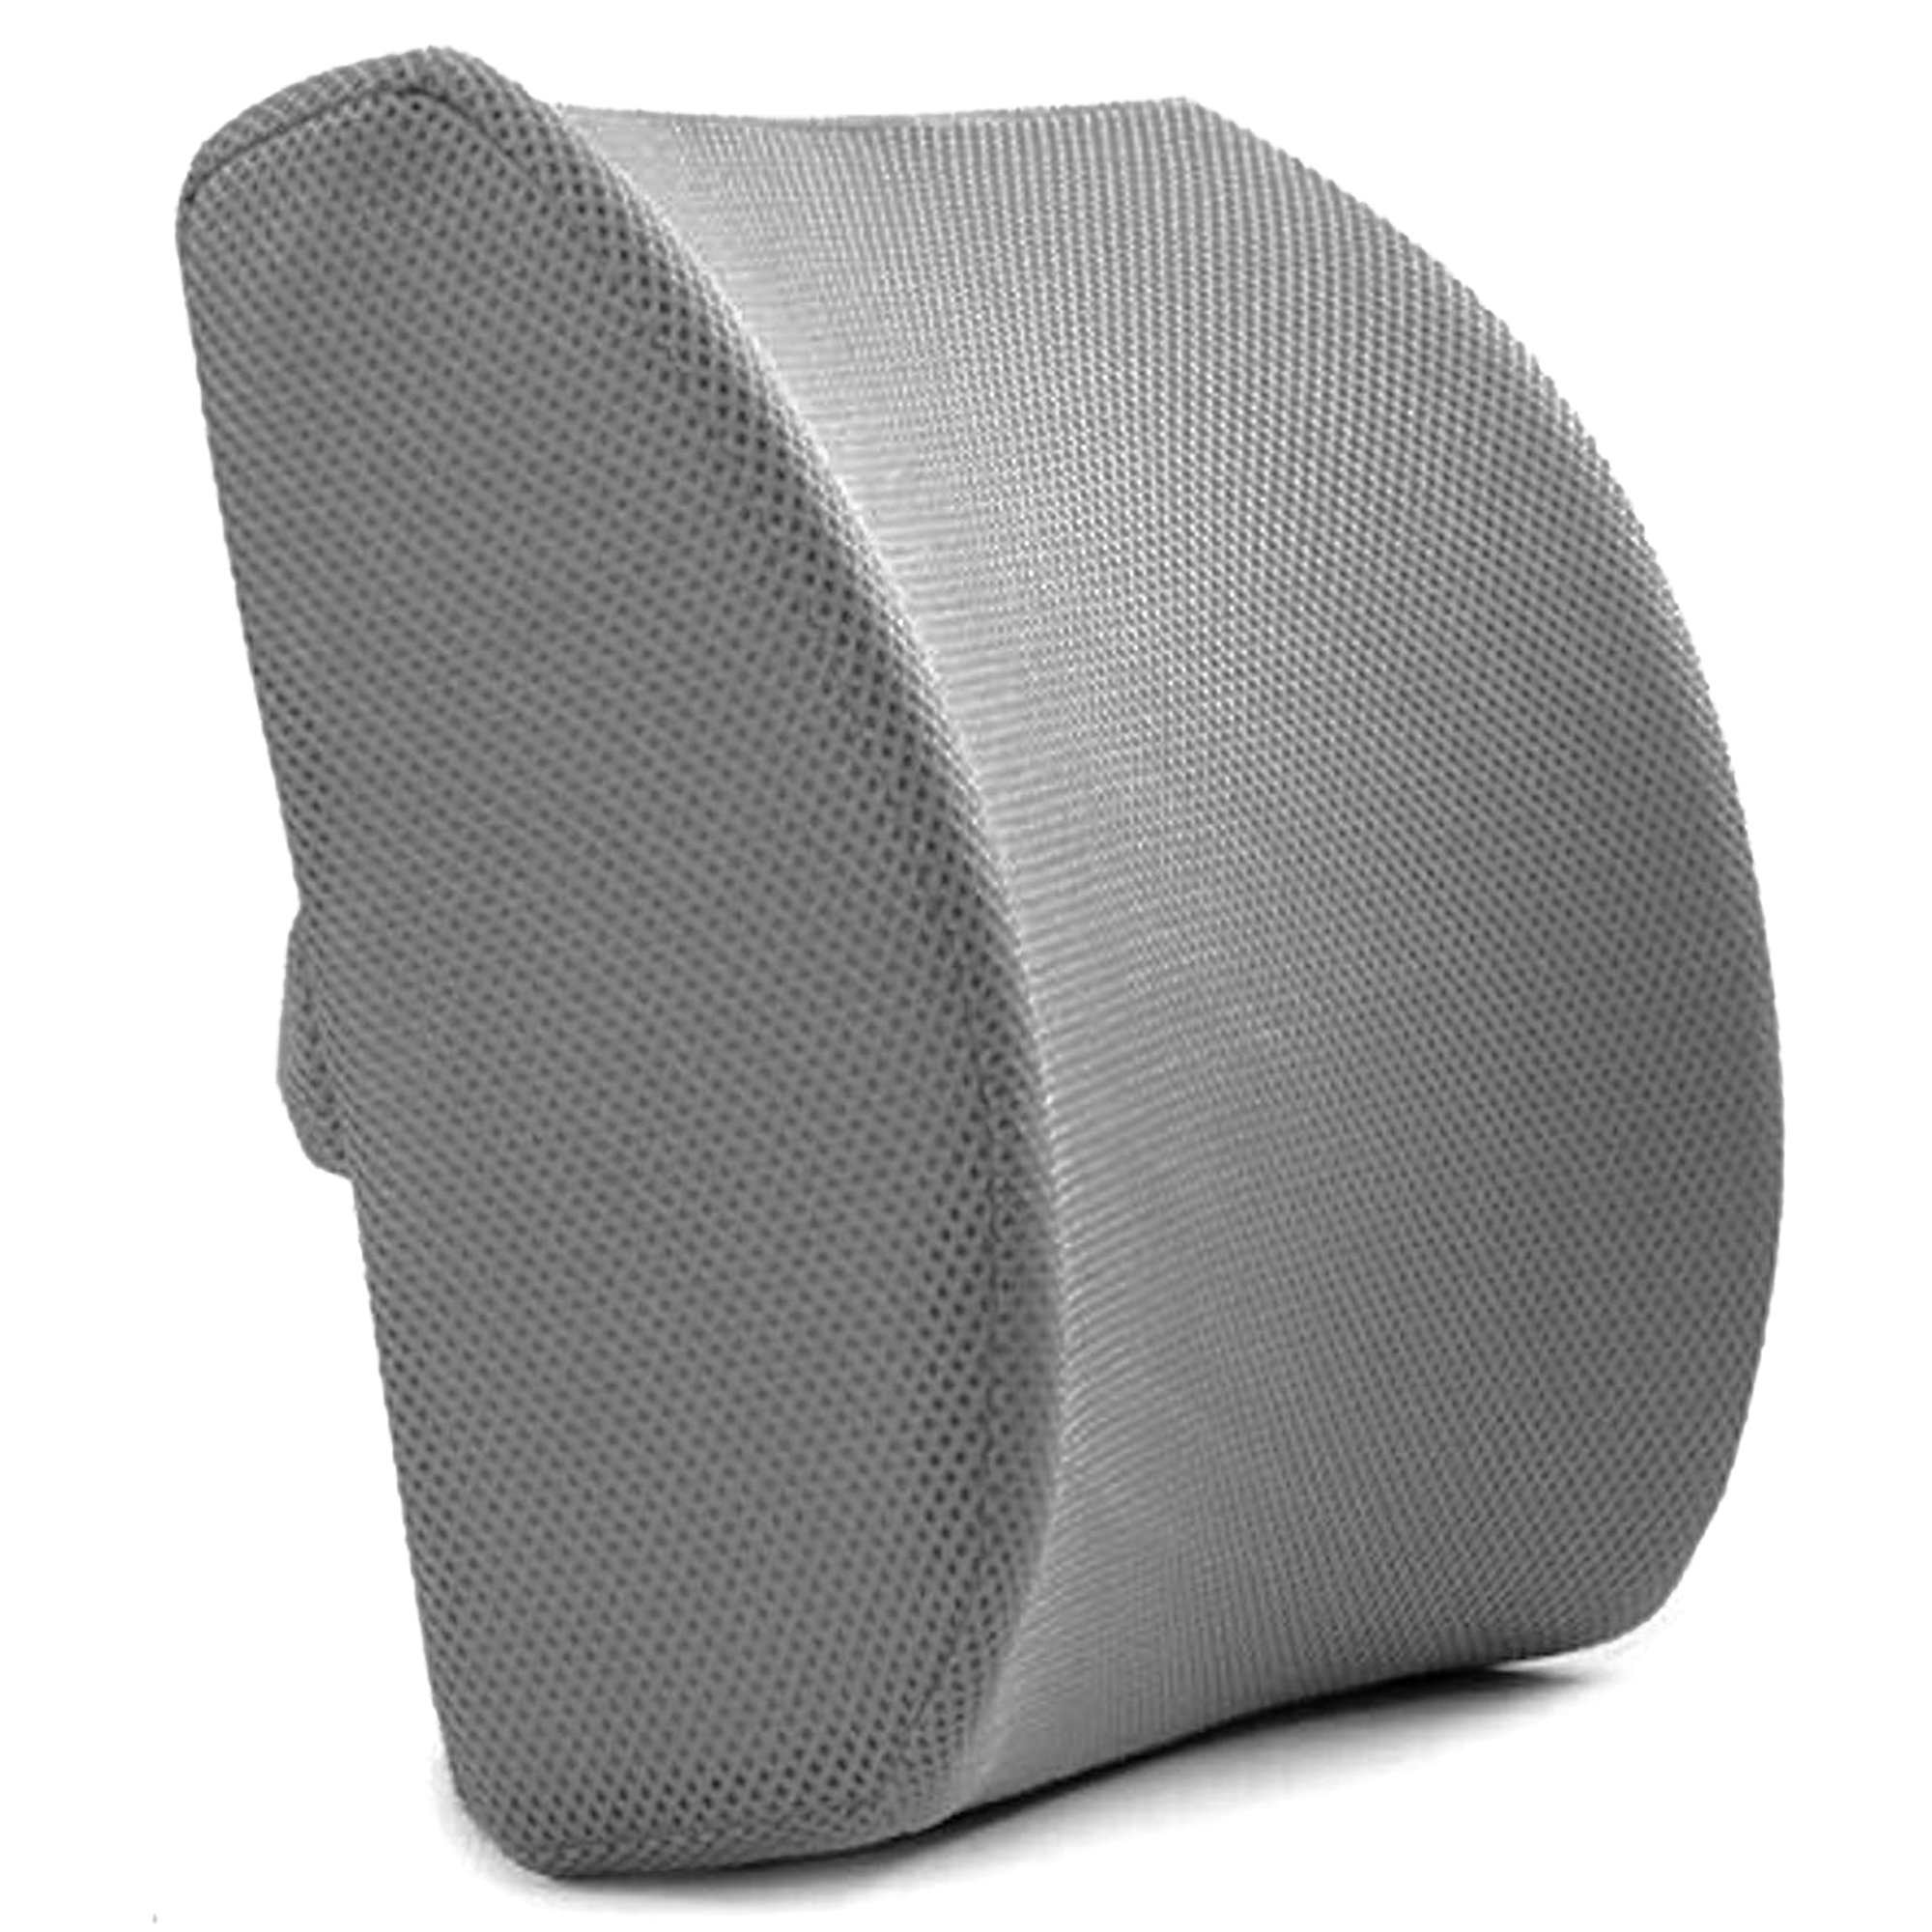 Back Support Cushion (Gray) - Orthopedic Support - Memory Foam Lumbar Support Pillow with 3D Mesh Cover for Balanced Firmness by Slick Solutions